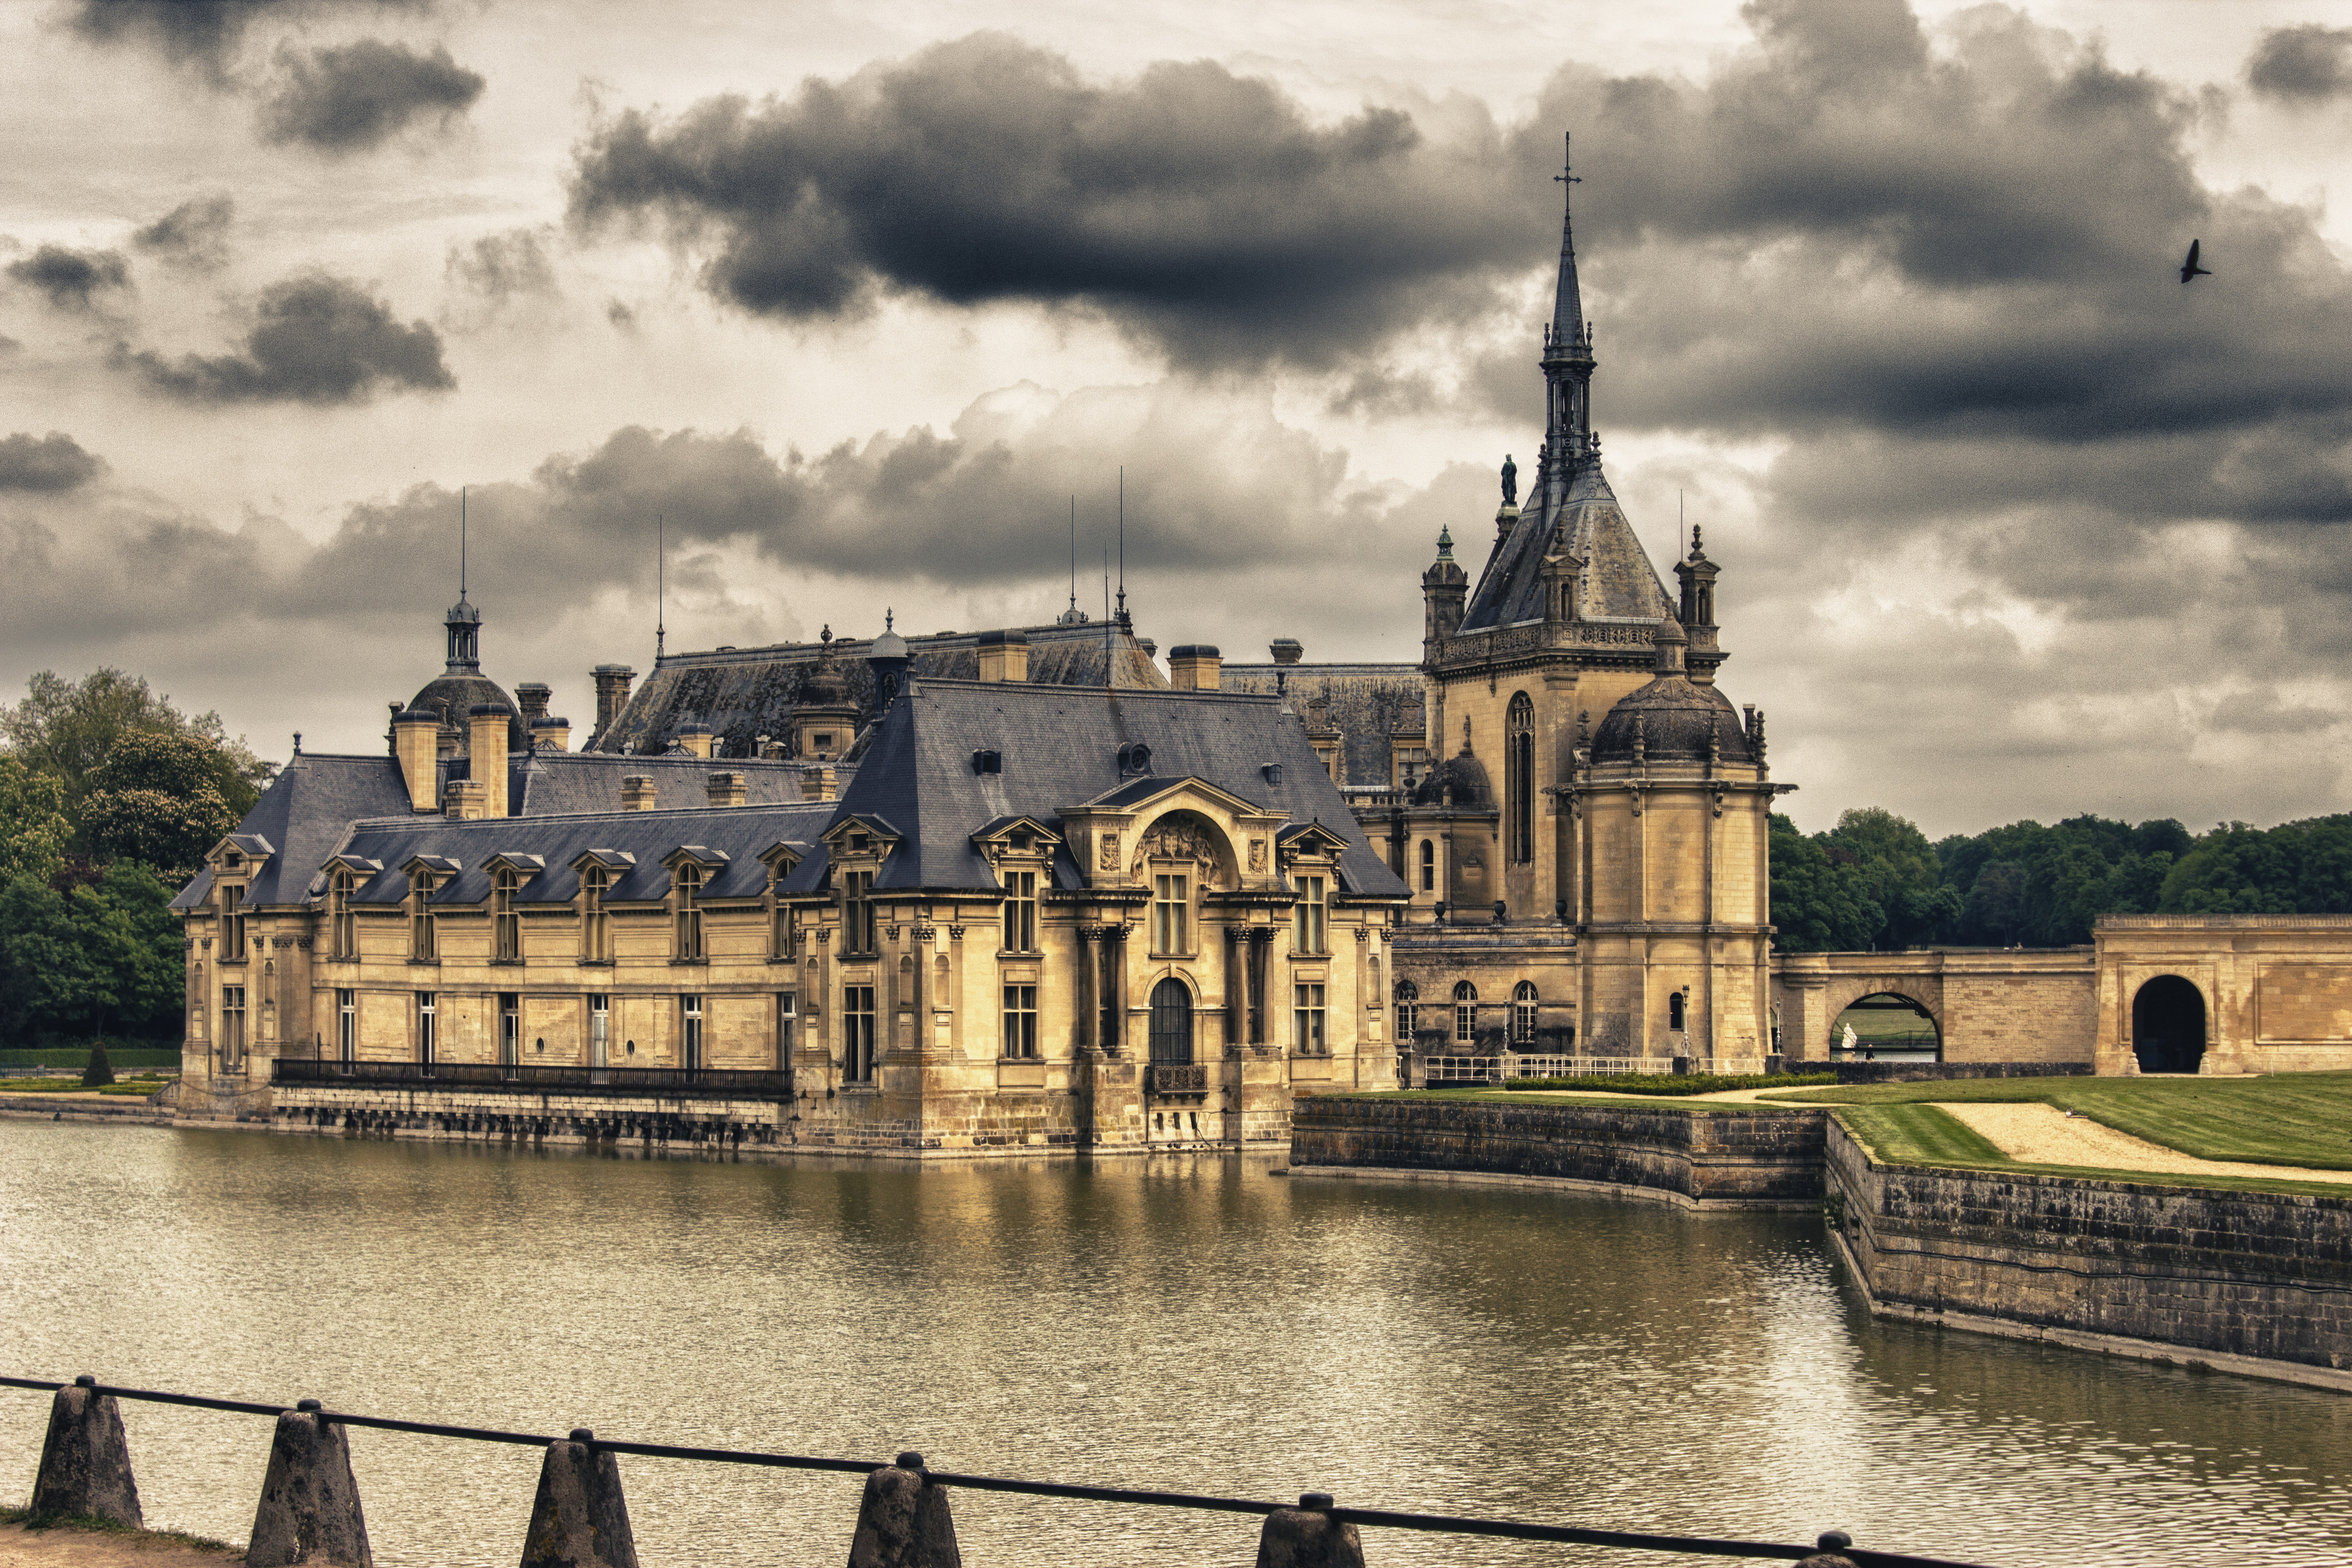 Ch teau de chantilly maro ku era - Chateau de chantilly adresse ...